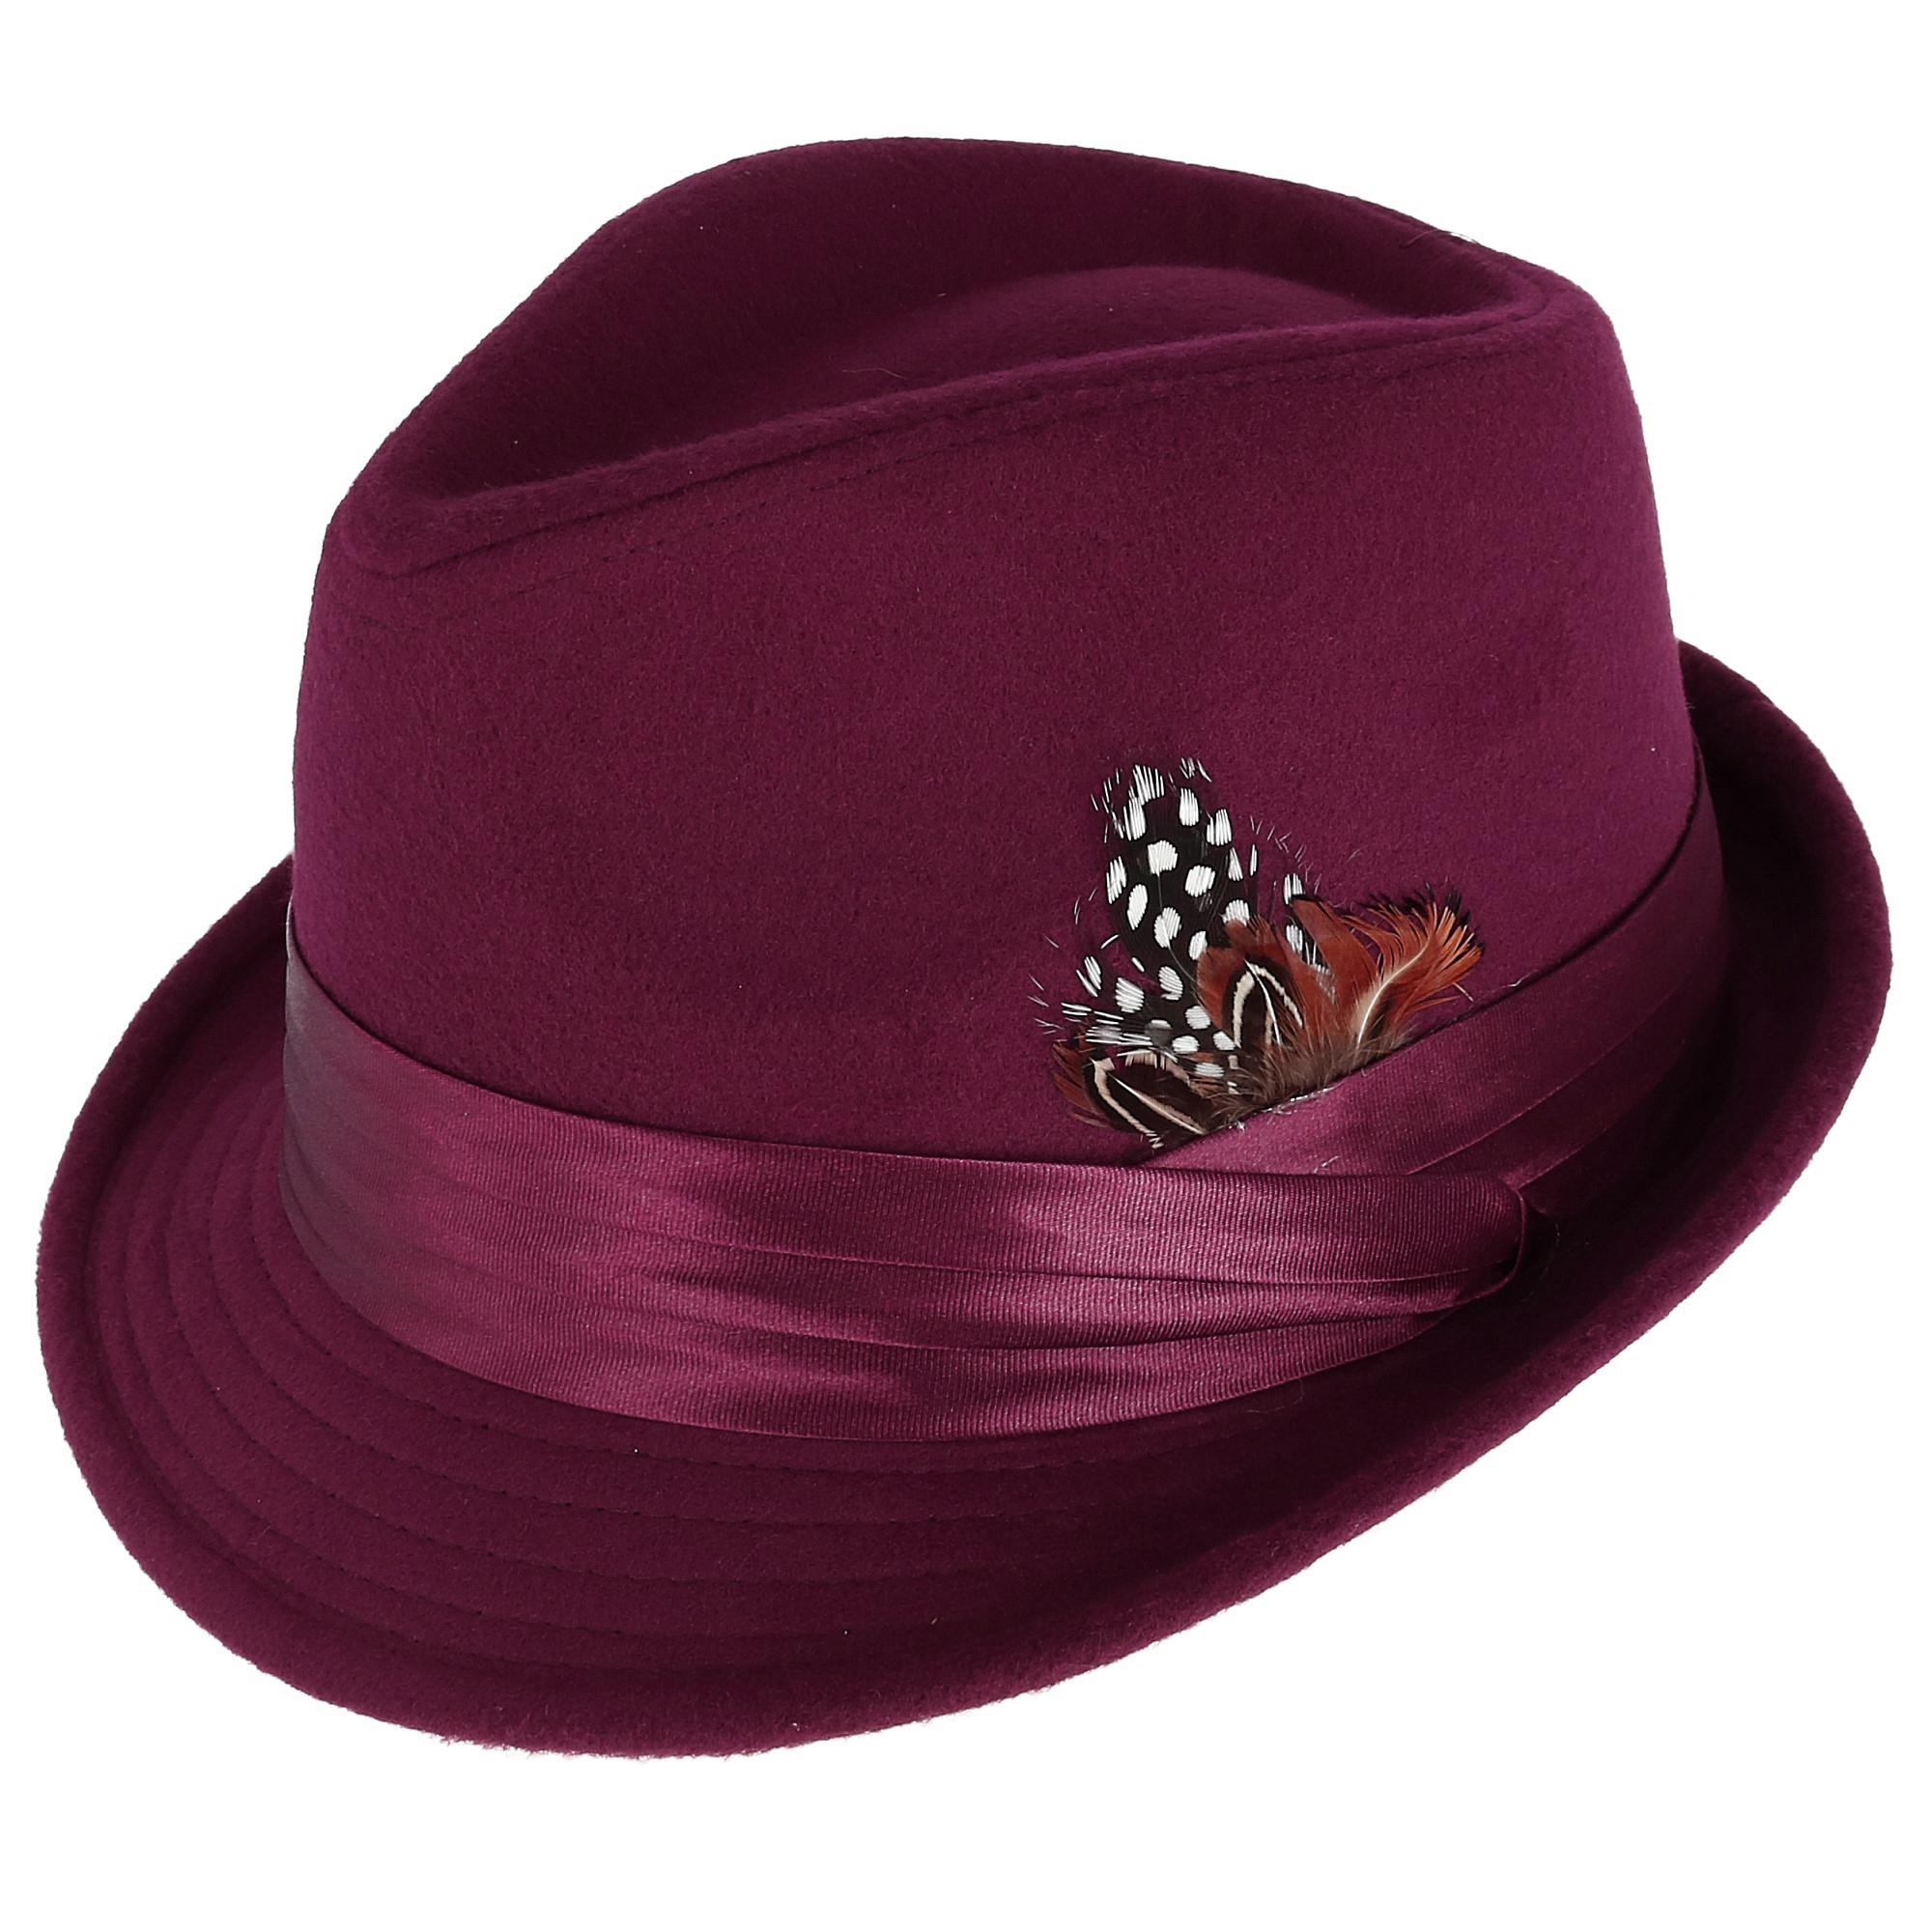 5beb198fb Details about New Kenny K Men's Dressy Faux Felt Fedora with Removable  Feather